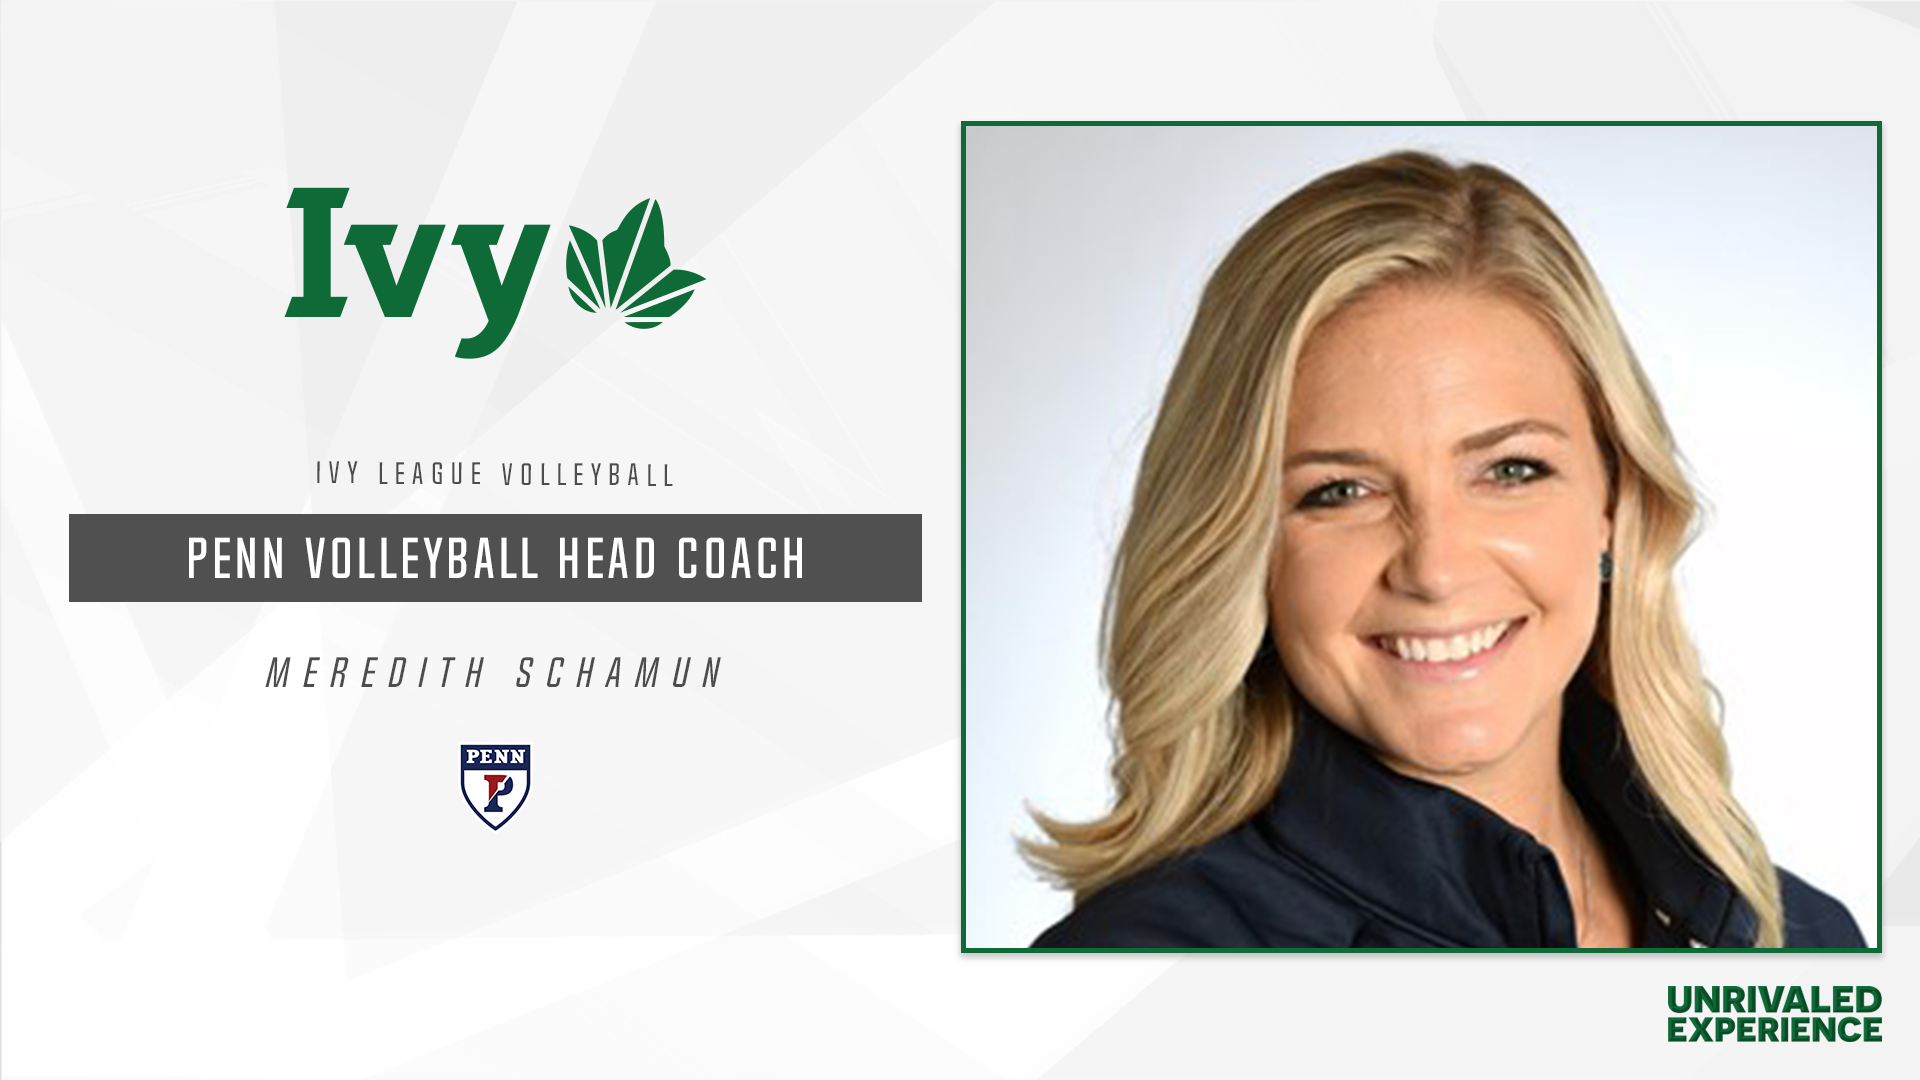 Schamun Named Penn Volleyball Head Coach Ivy League